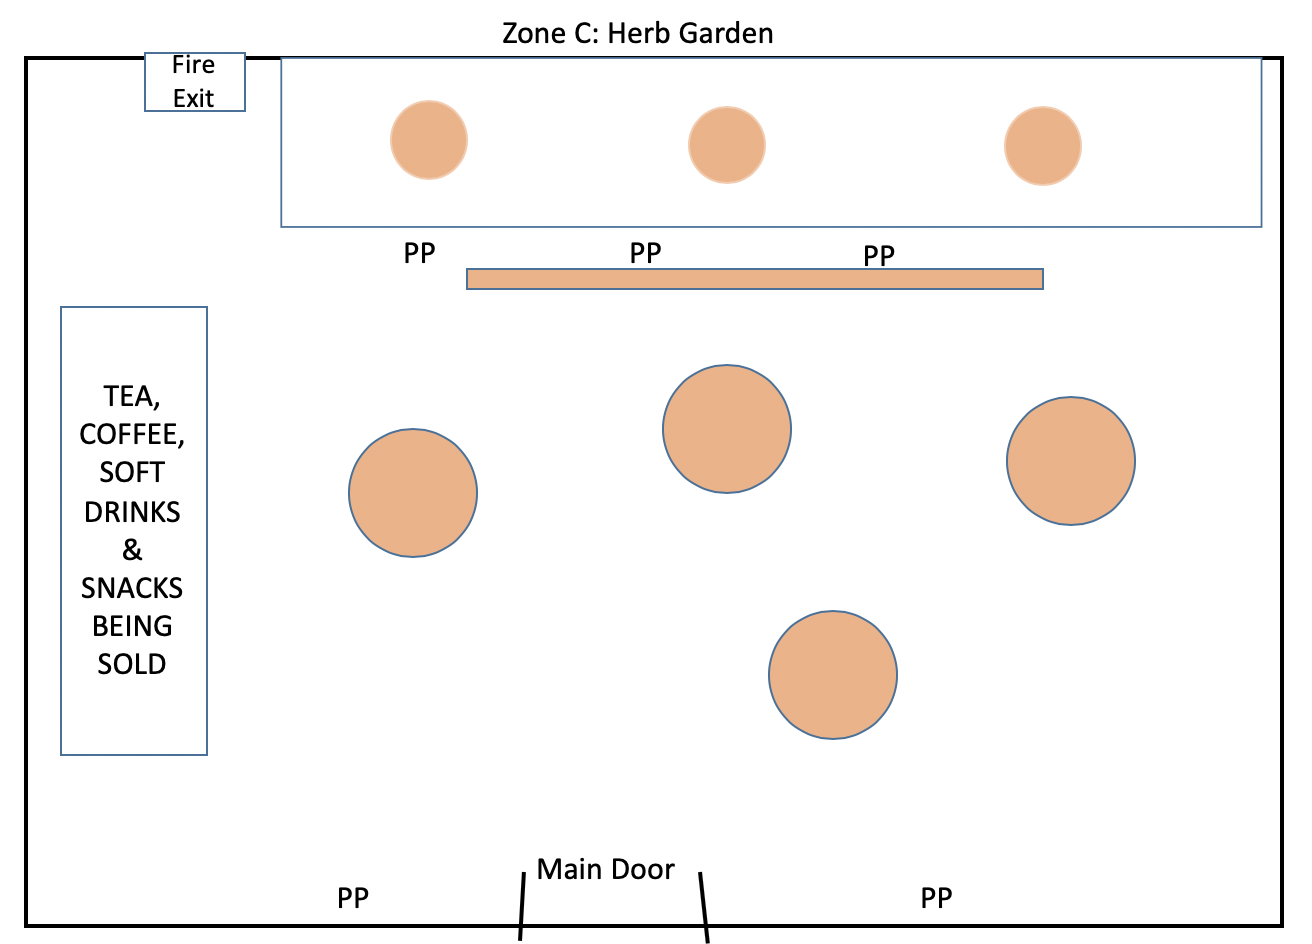 Zone C: Herb Garden conservatory - central networking area